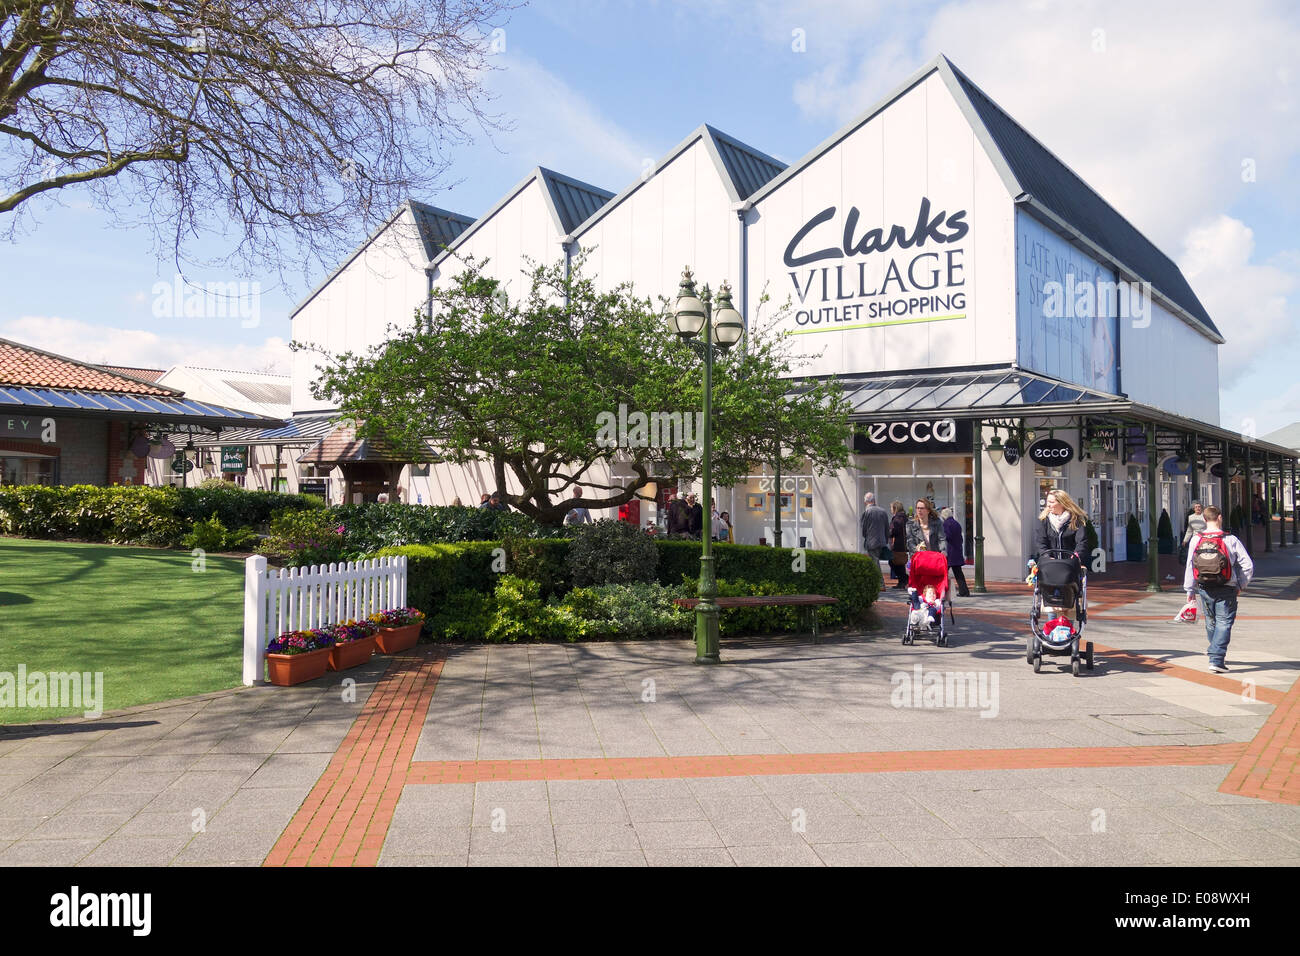 4240ad3f793 Clarks Village Outlet Shopping, Street, Somerset, England Stock ...